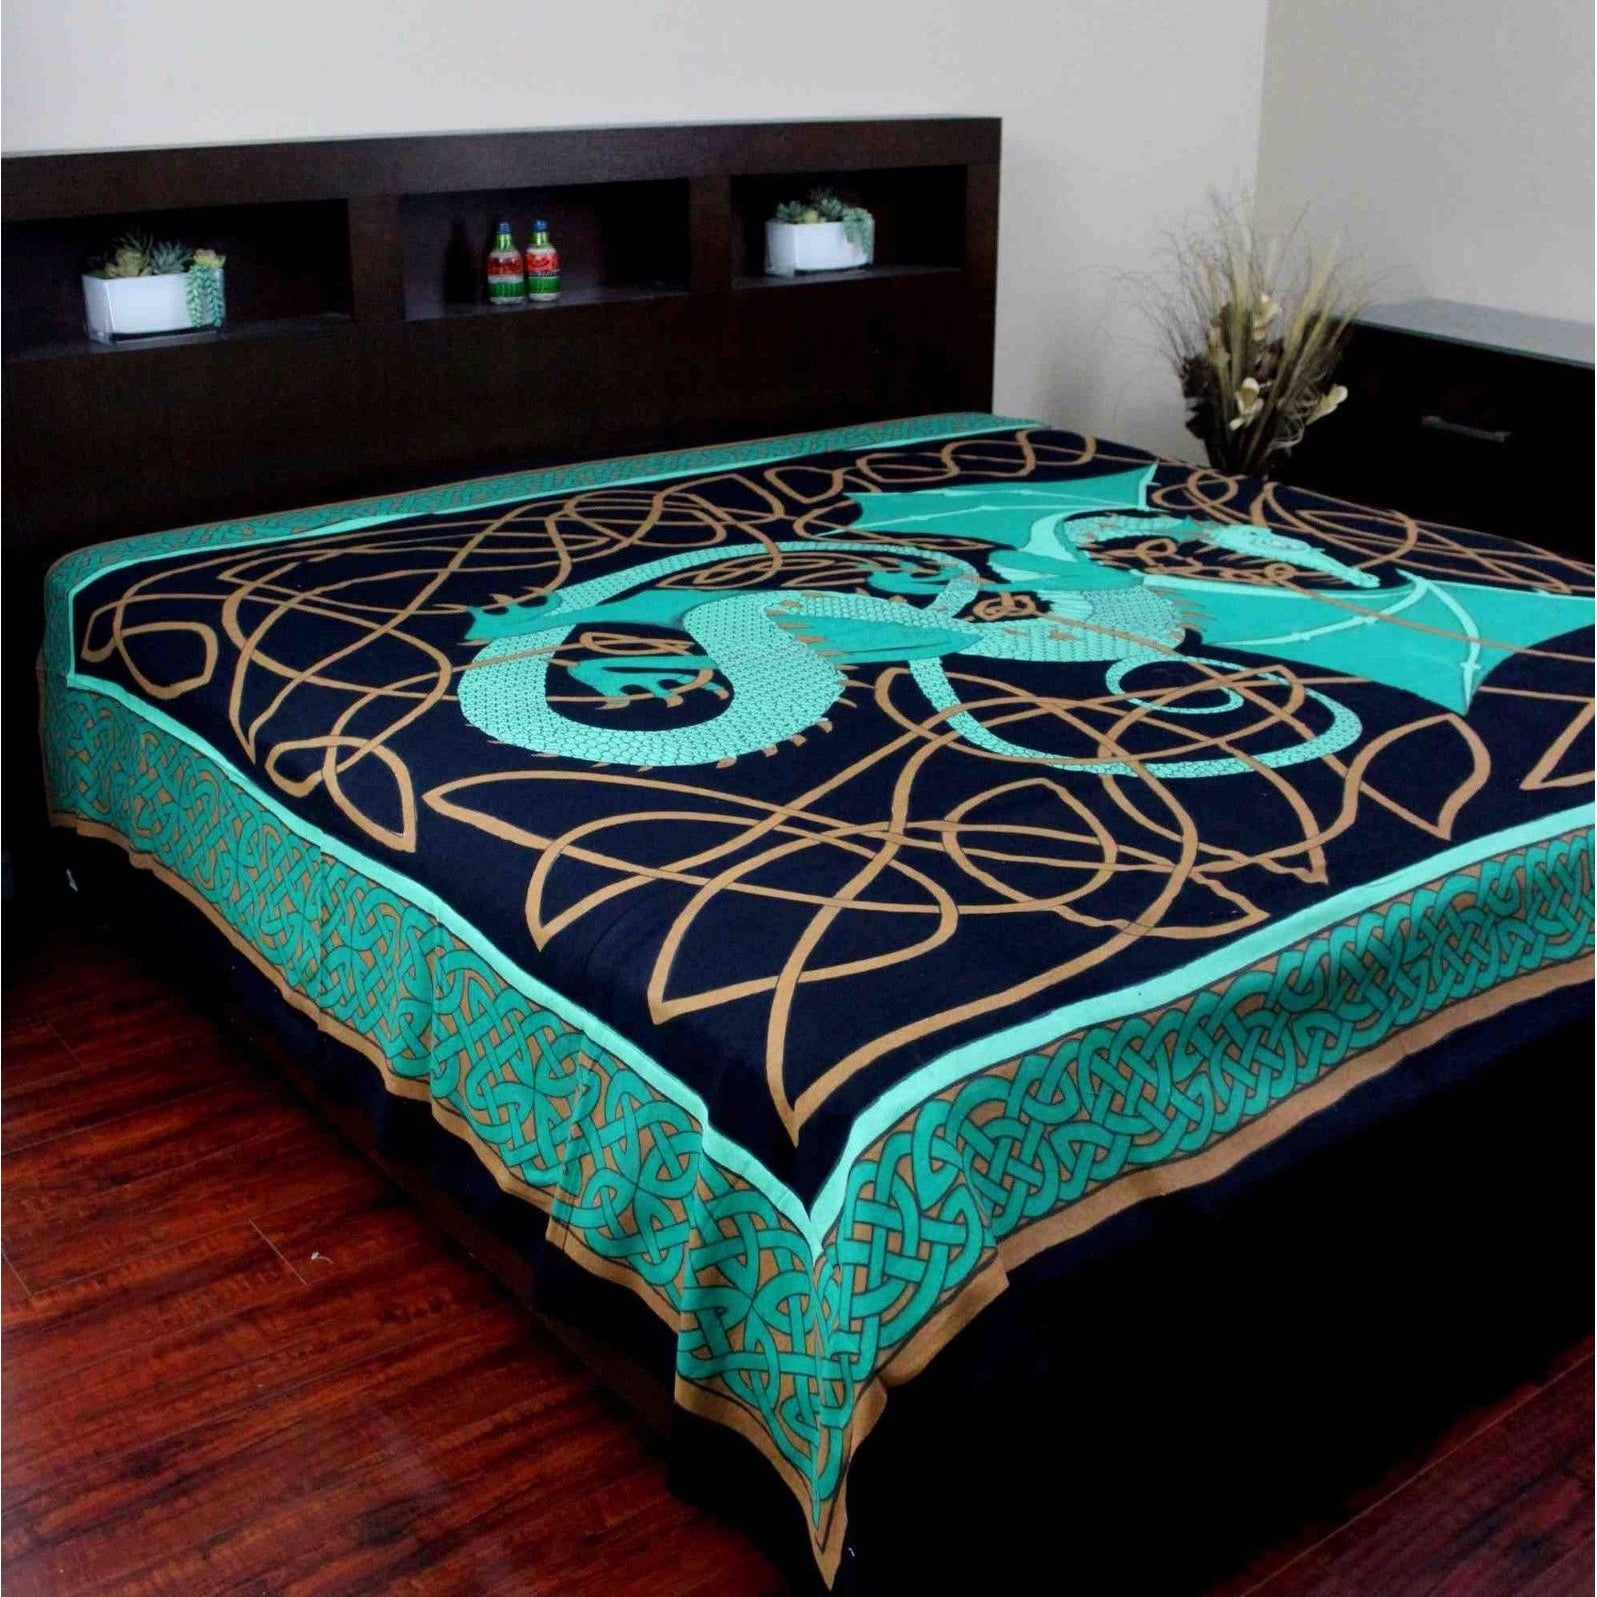 Cotton Celtic Dragon Tapestry Wall Hanging Tablecloth Bedspread Dorm Decor Beach Sheet Red Green & Blue in Twin & Full - Thumbnail 0